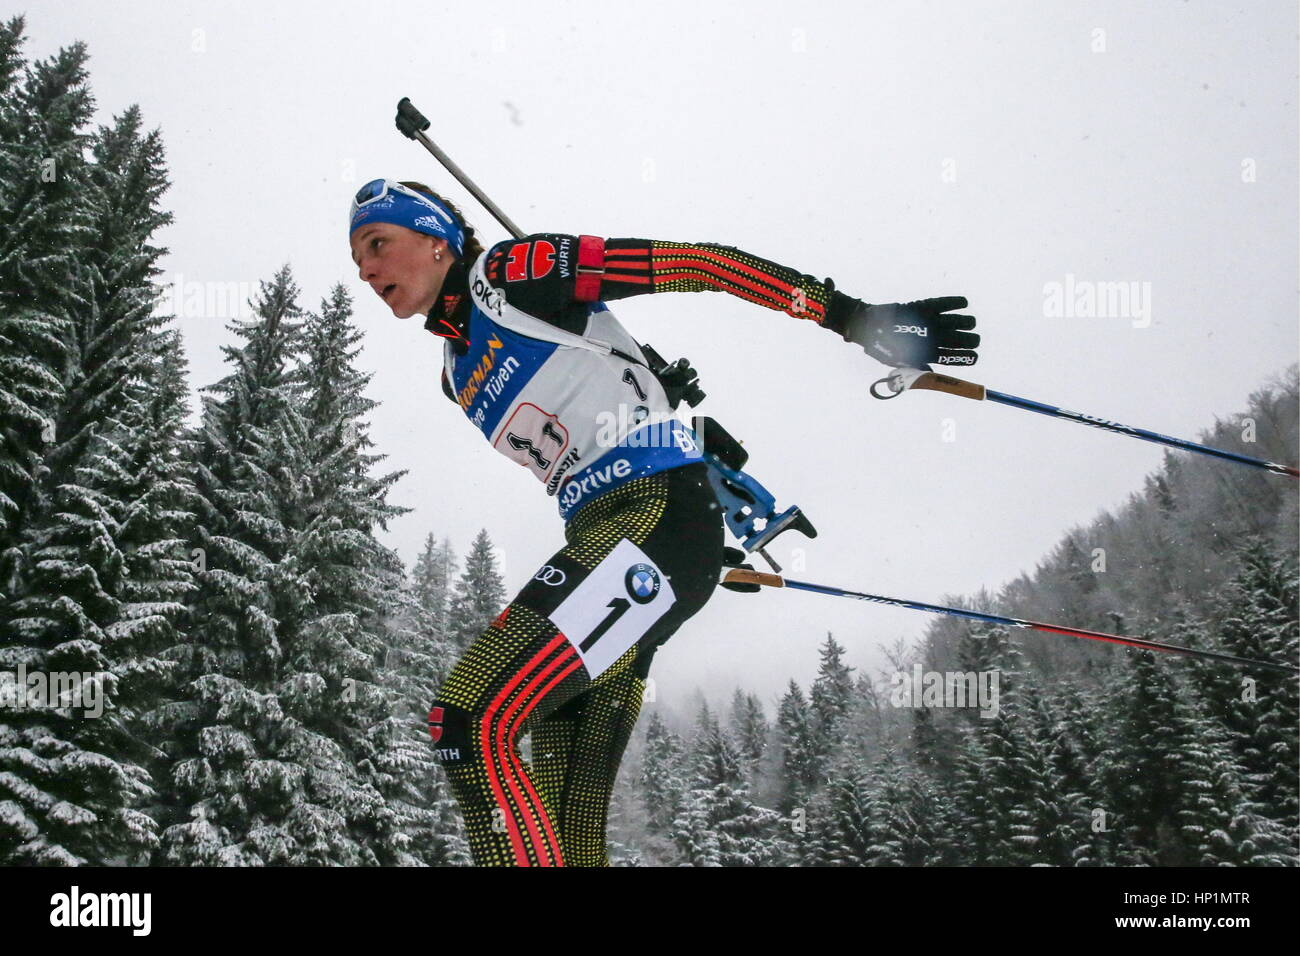 Hochfilzen, Austria. 17th Feb, 2017. Biathlete Vanessa Hinz of Germany competes in the women's 4x6km relay event - Stock Image